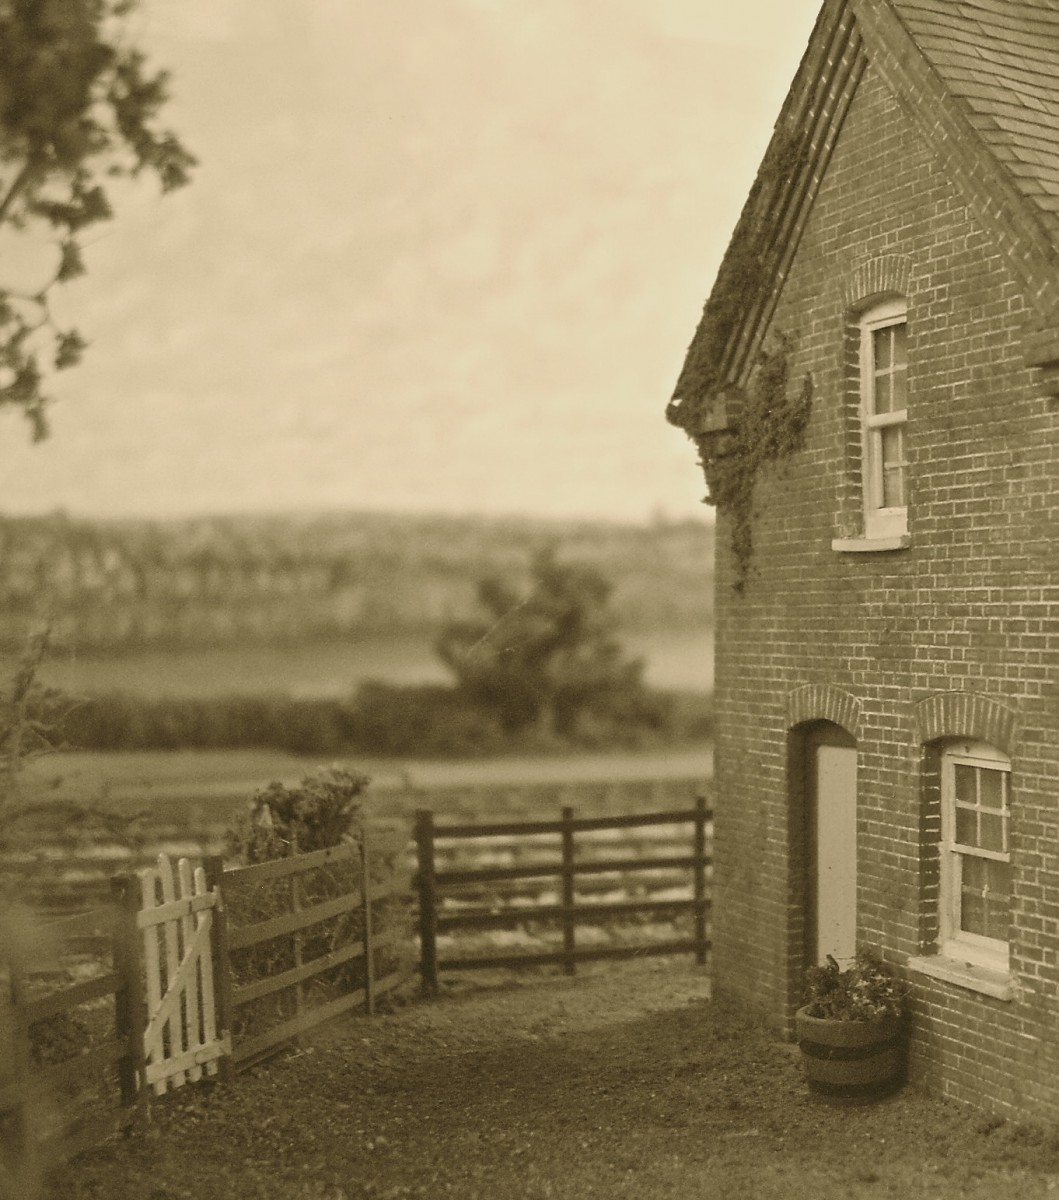 The back wall of a crossing keeper's cottage in the Vale, alongside the Aylesbury and Buckingham Railway